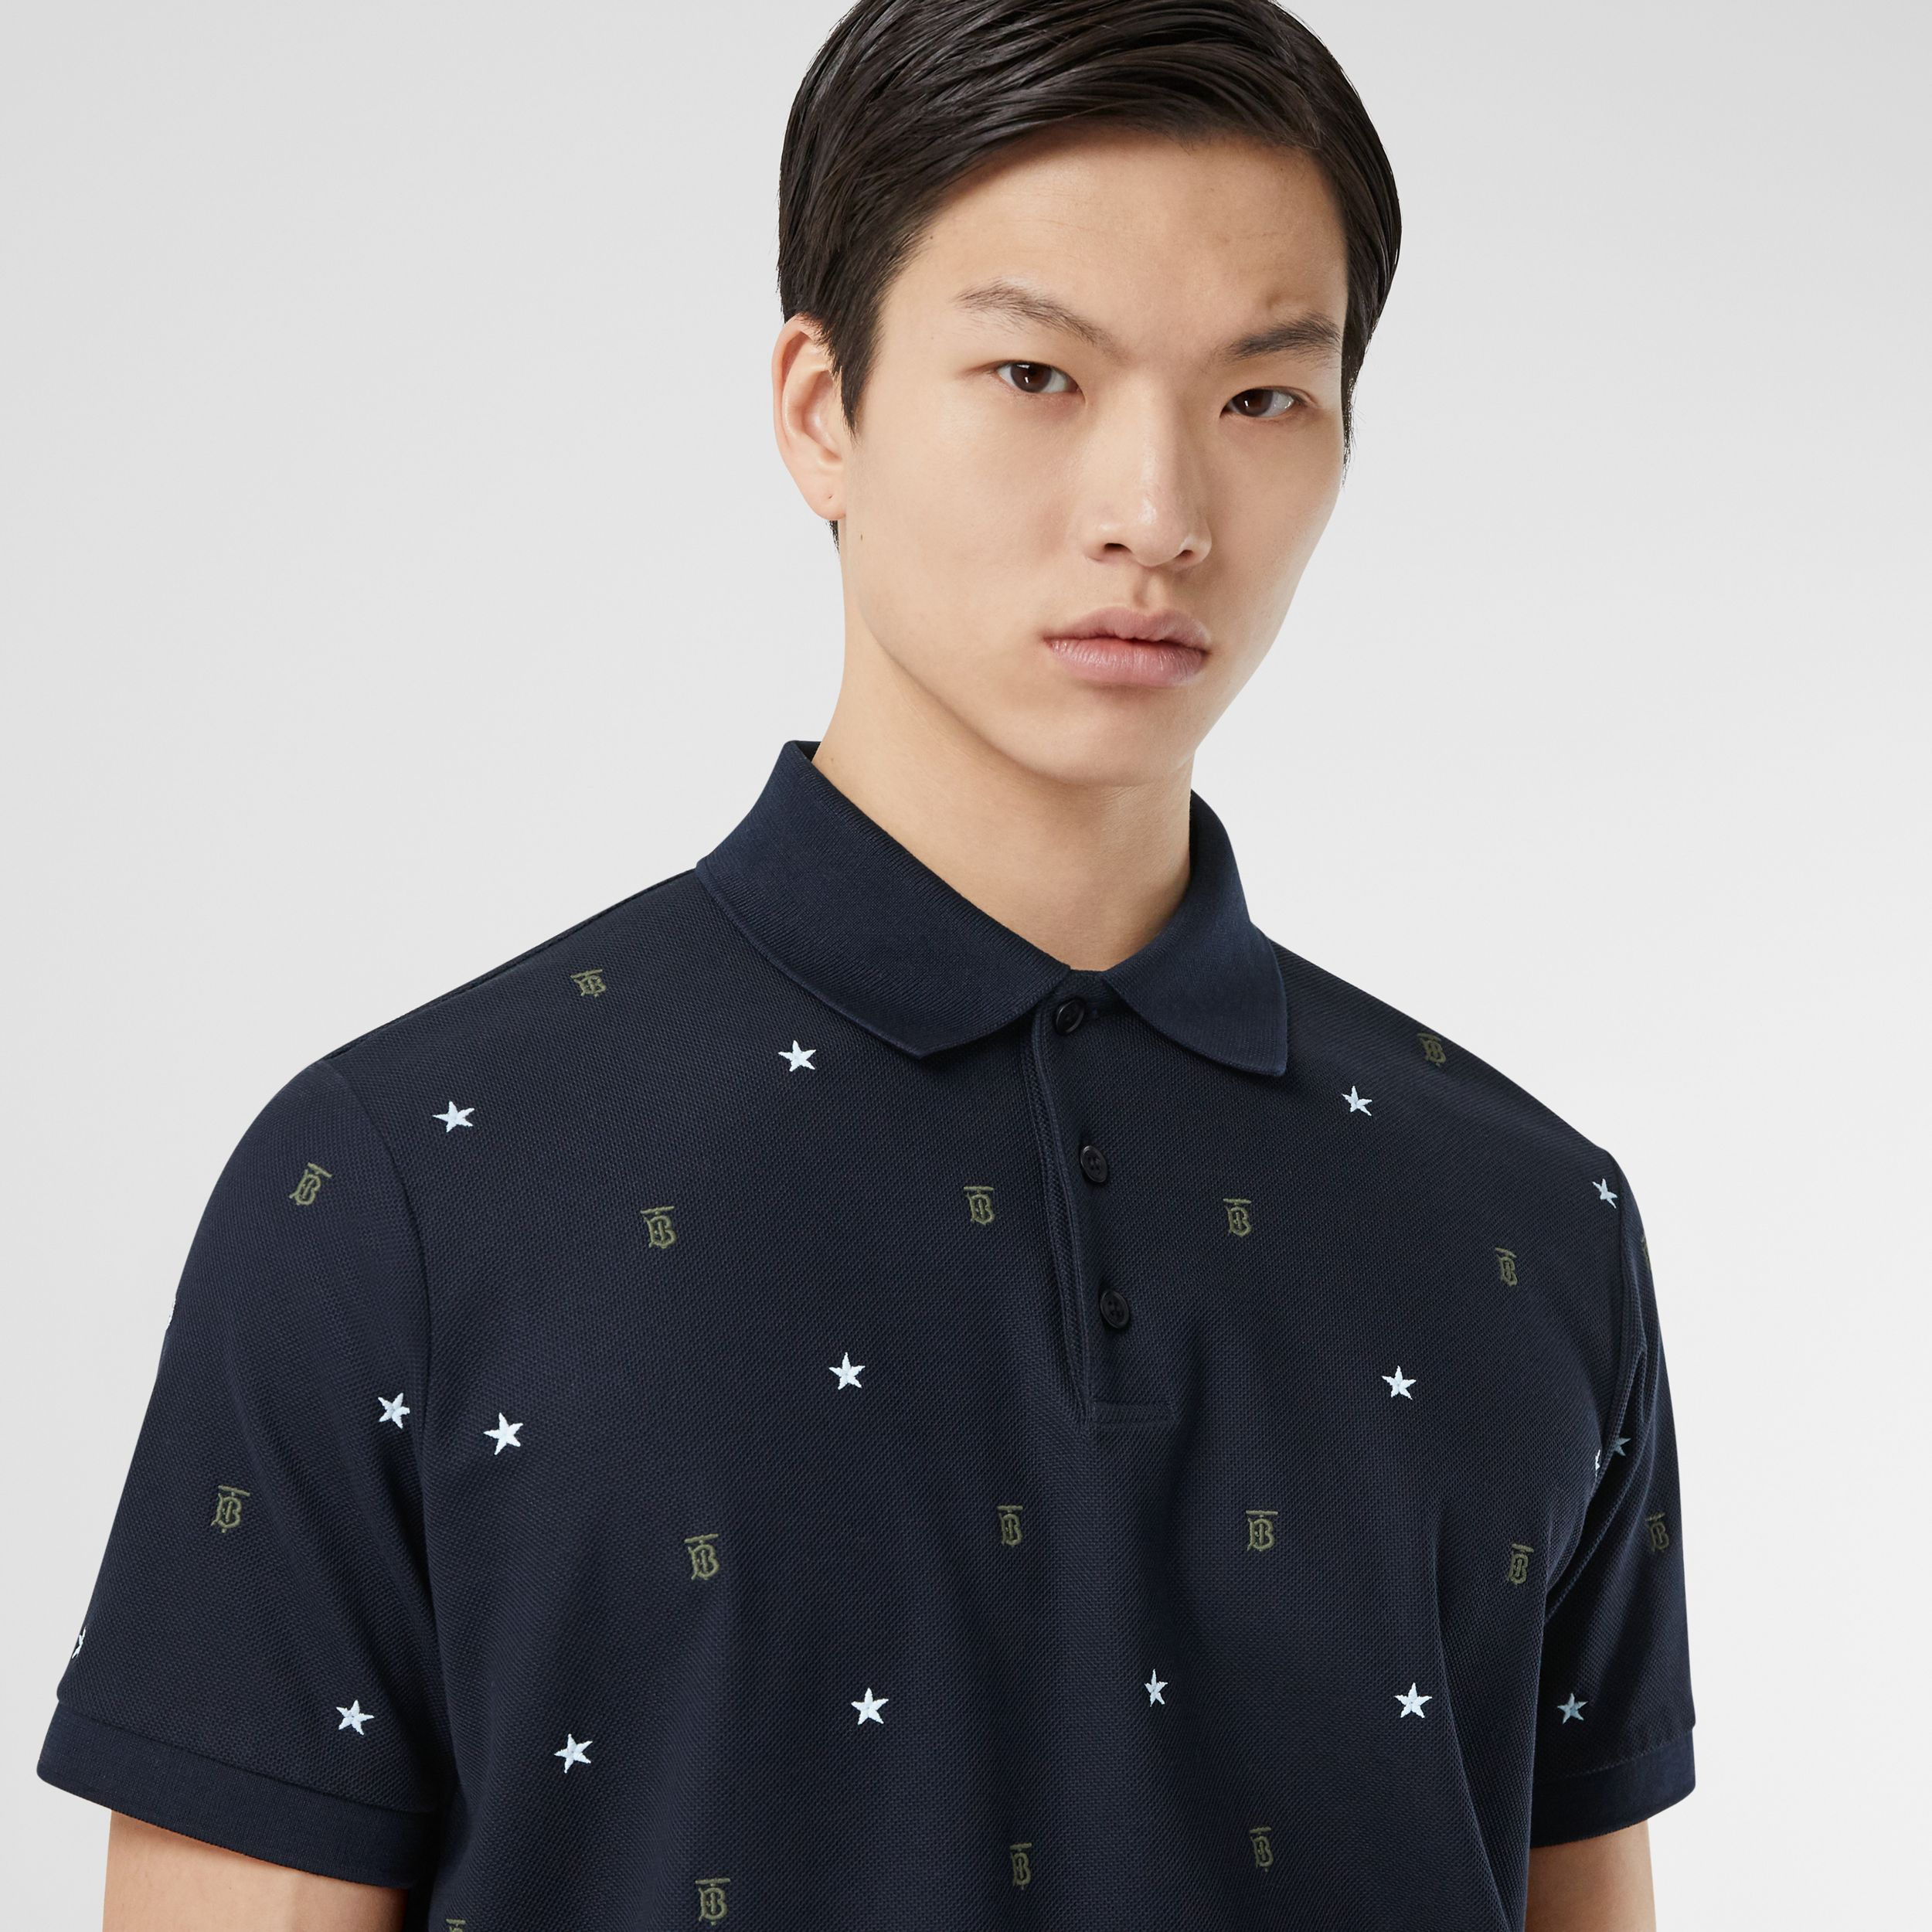 Star and Monogram Motif Cotton Piqué Polo Shirt in Navy - Men | Burberry - 2